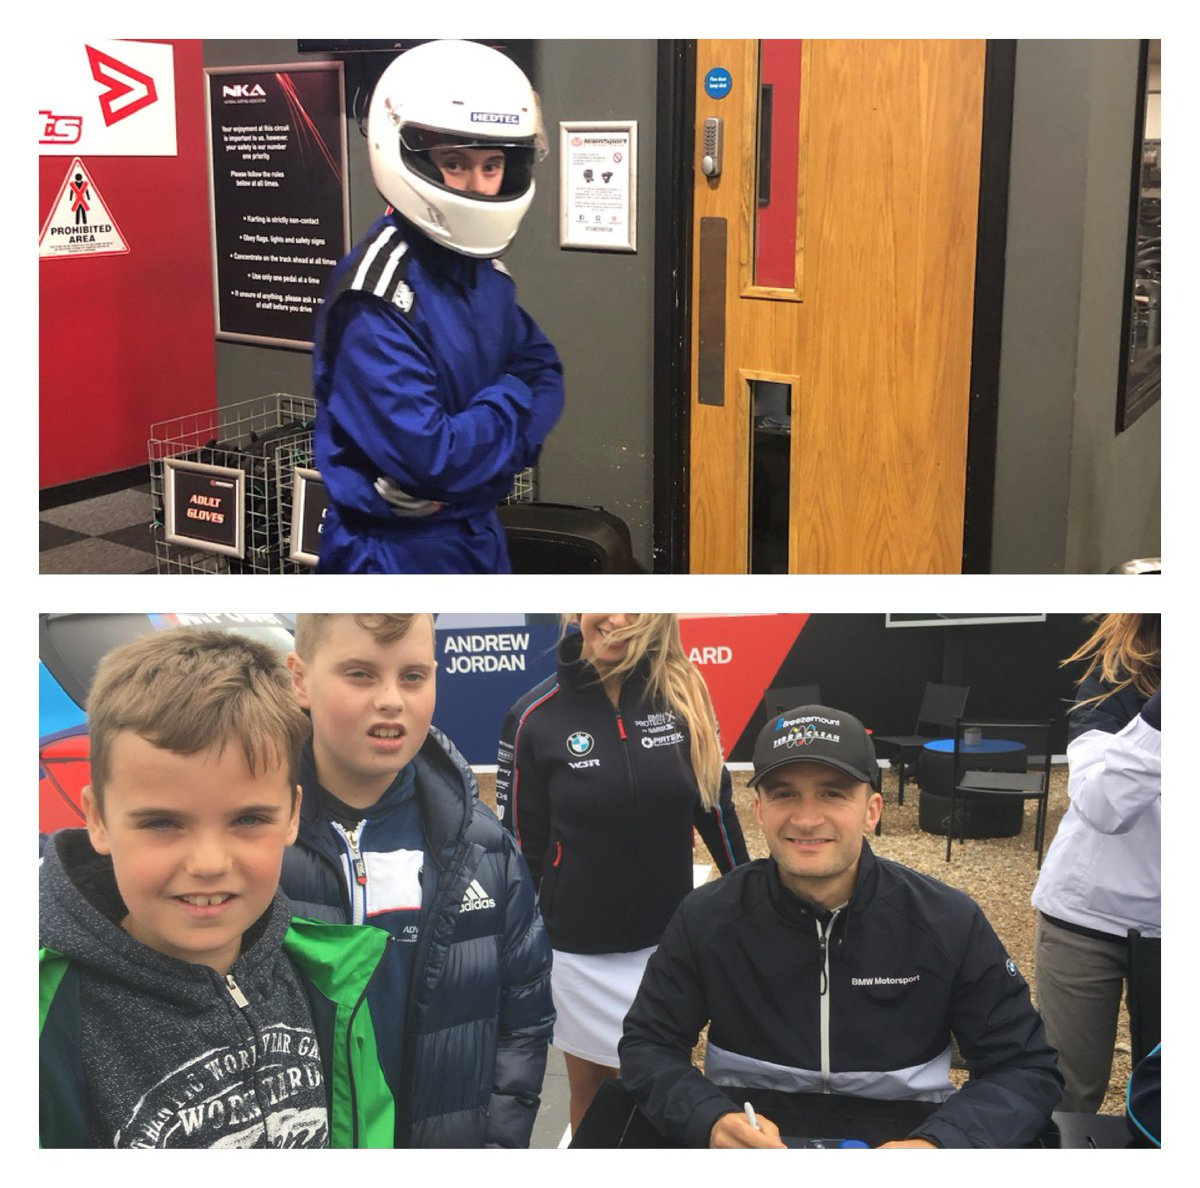 Thanks for thinking of us guys... Wouldn't this be mega for Charlie to allow him to really get to grips with next level karting. After all, he's got all the equipment and the next step is his own kart. pic.twitter.com/g7sSmHgBlr